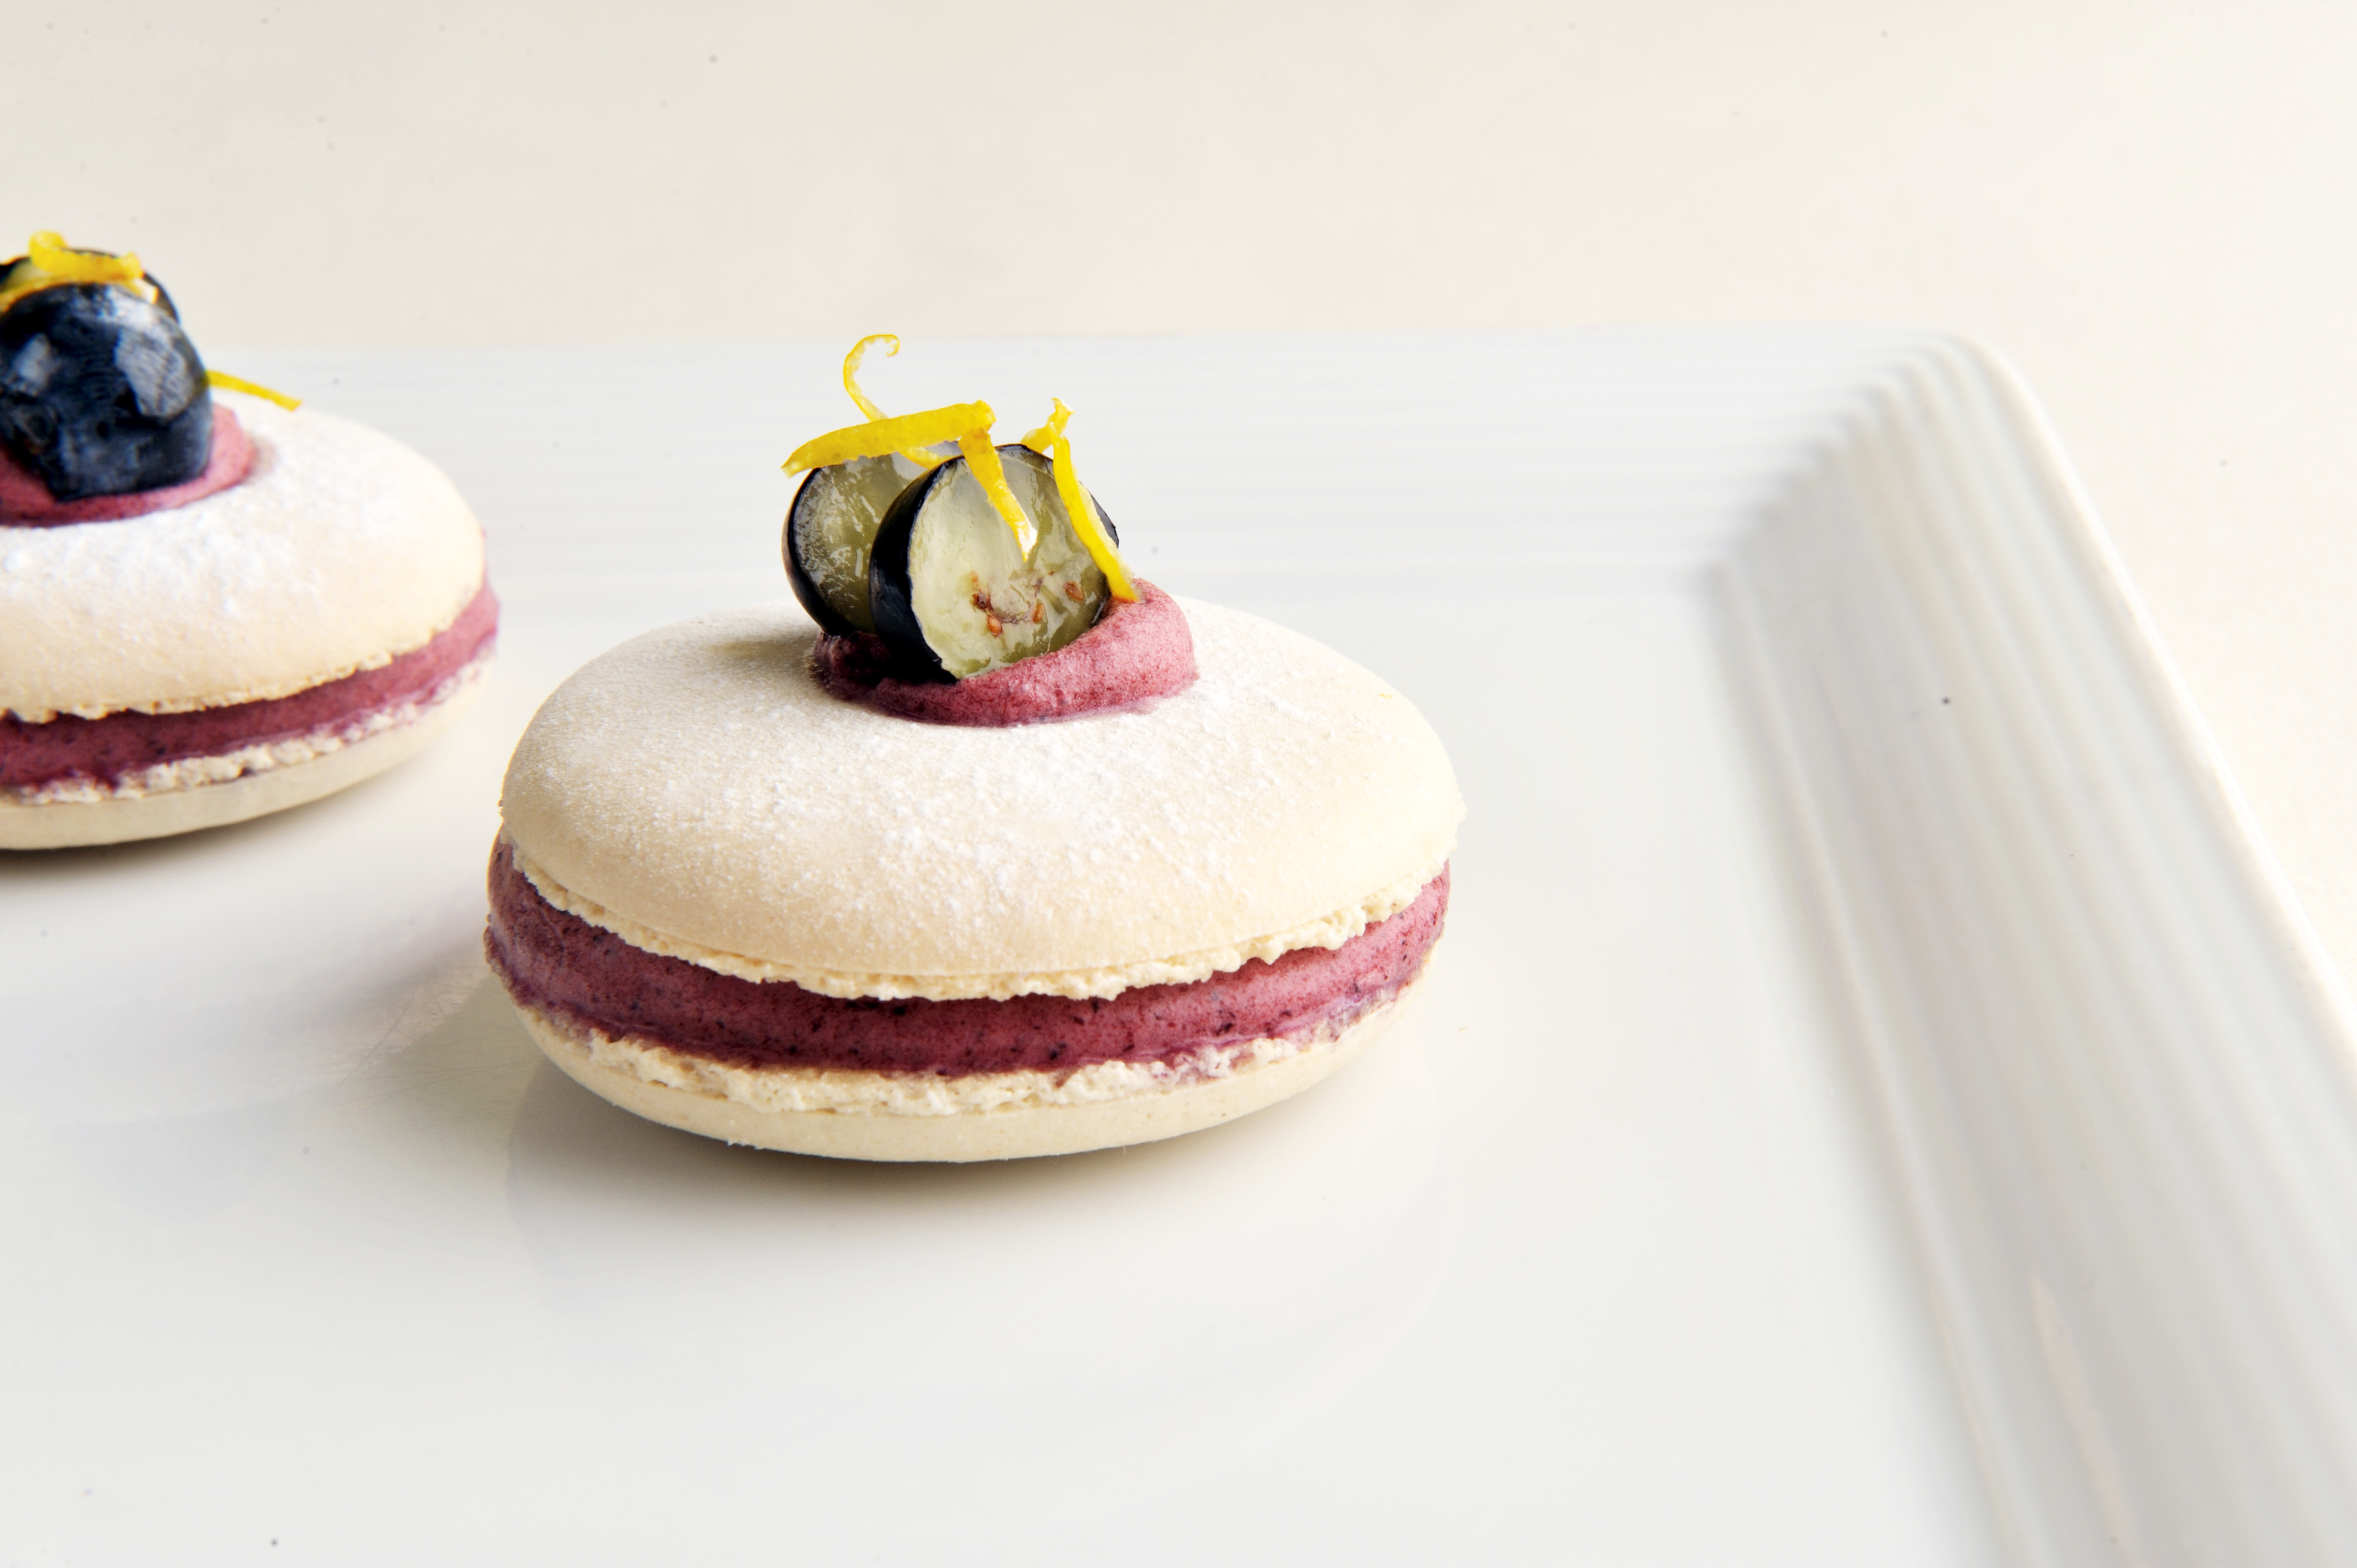 How To Make Macarons Great British Chefs